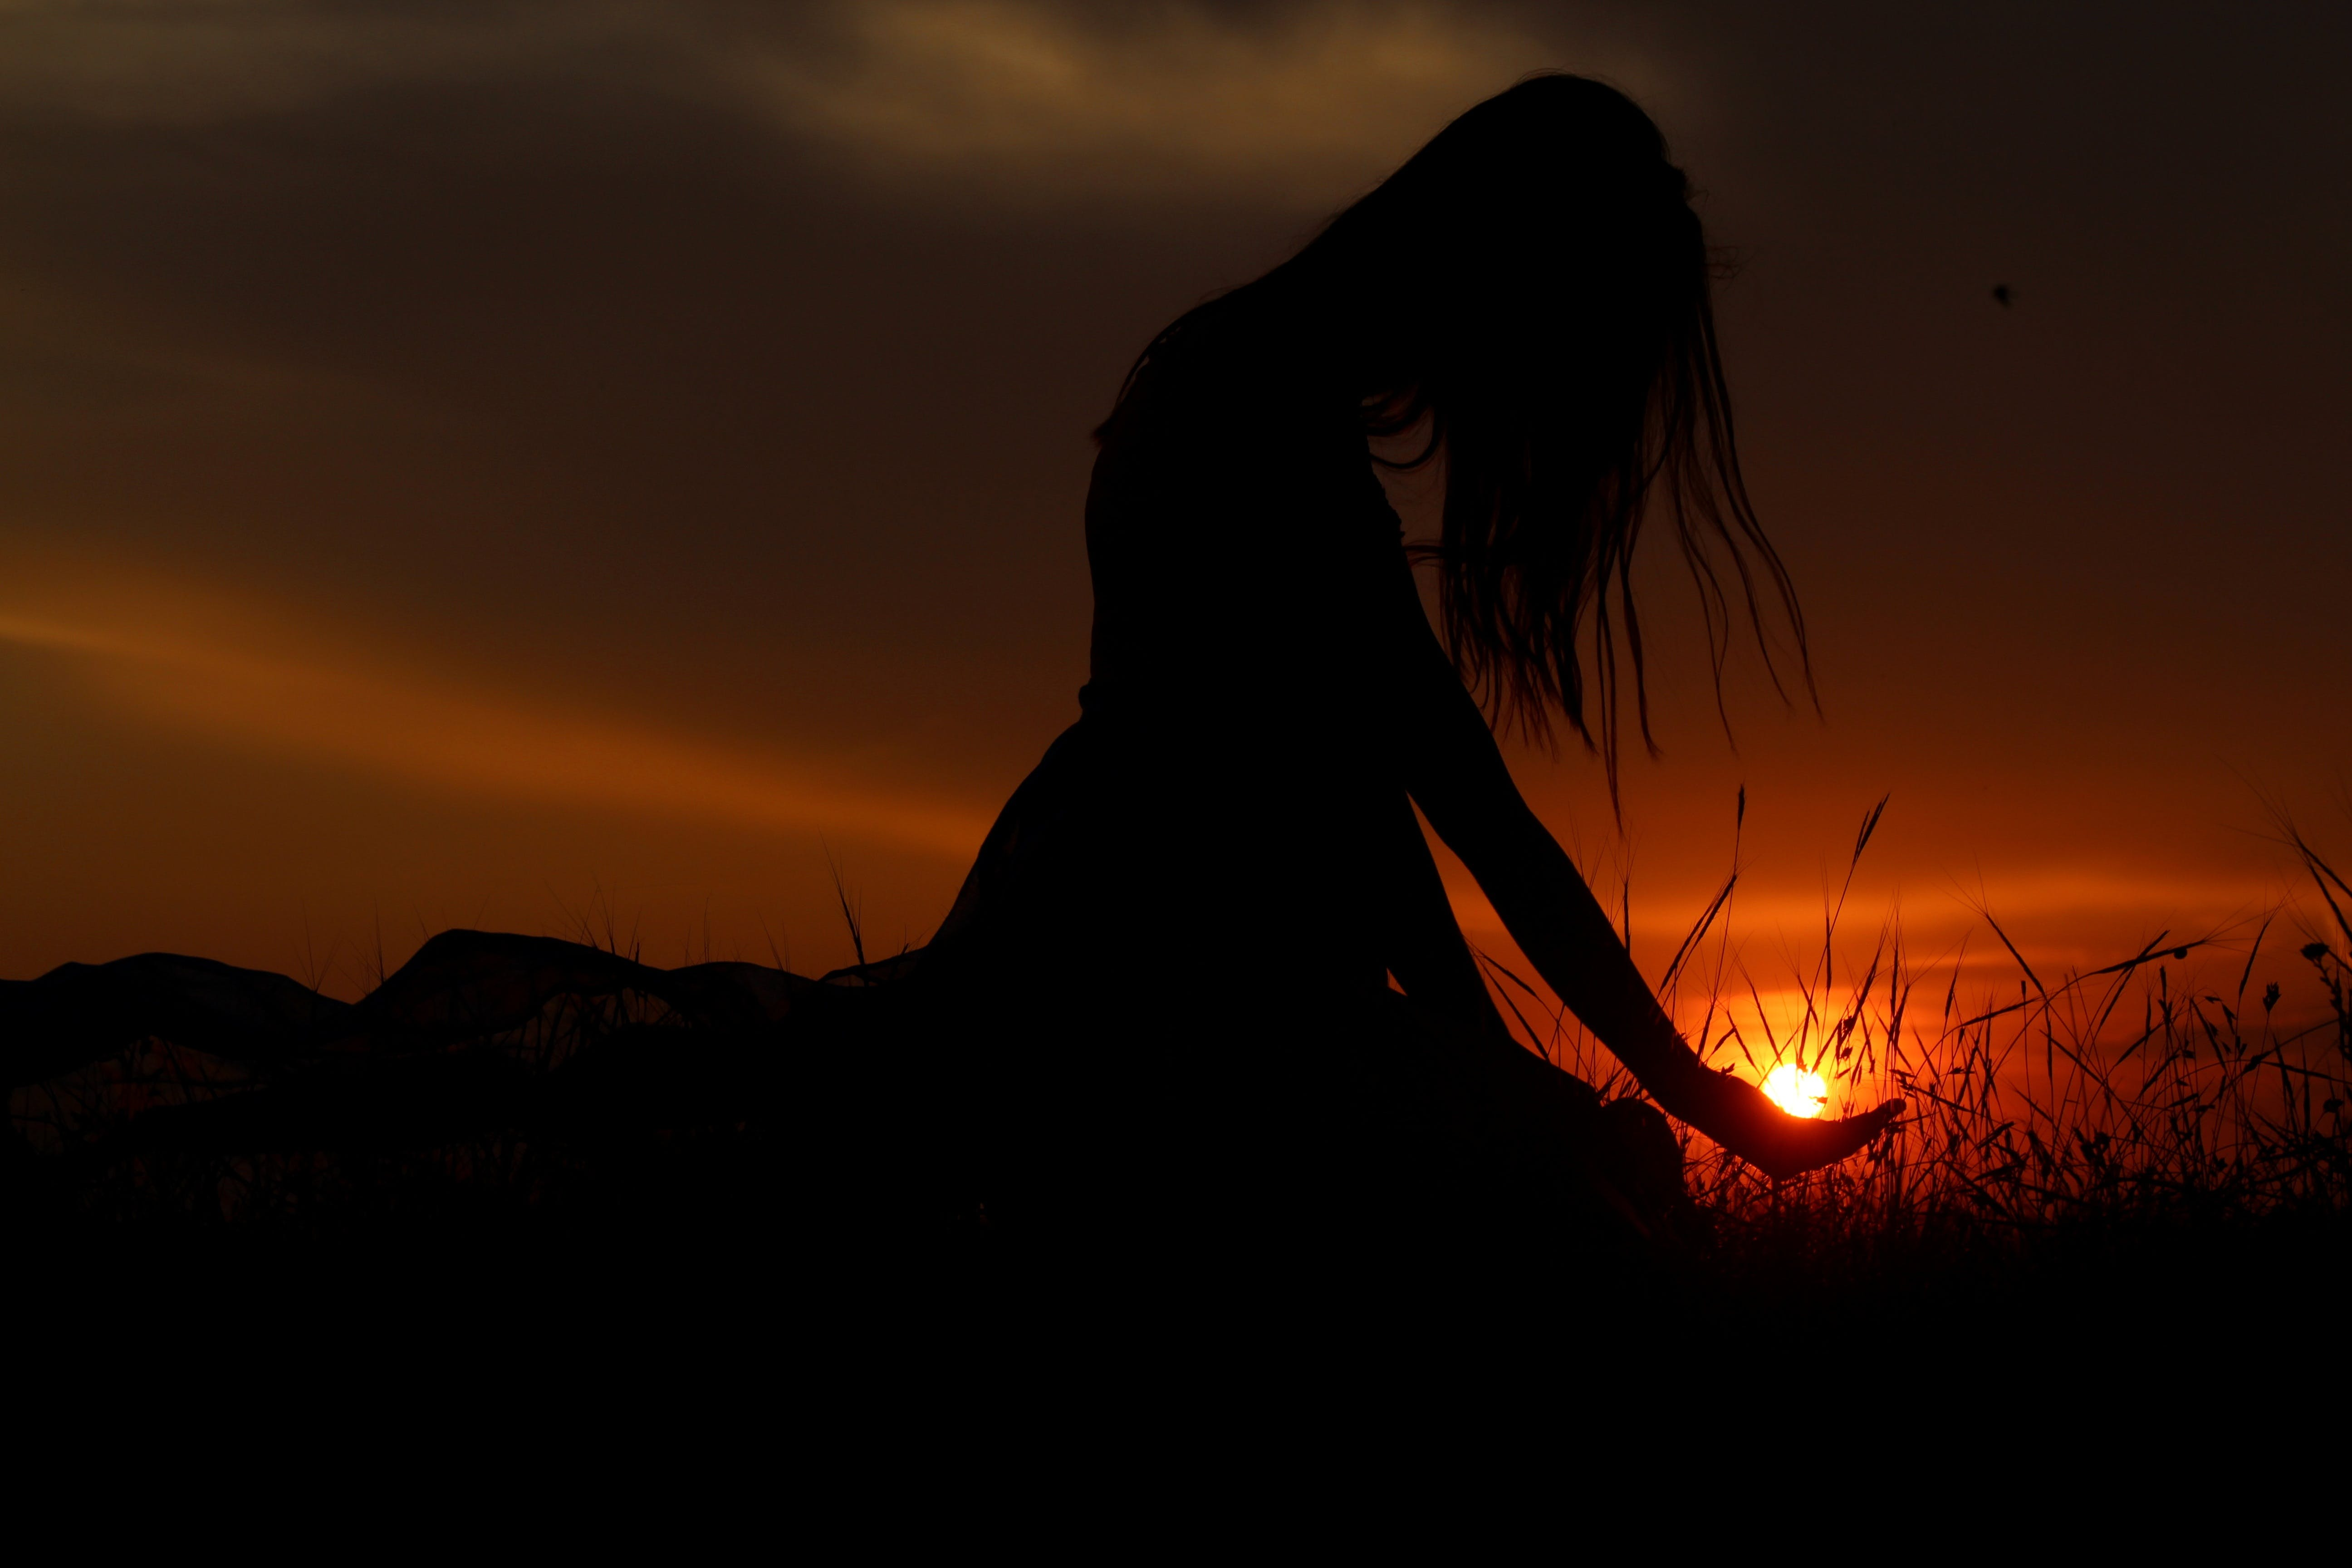 Woman's Silhouette during Golden Hour